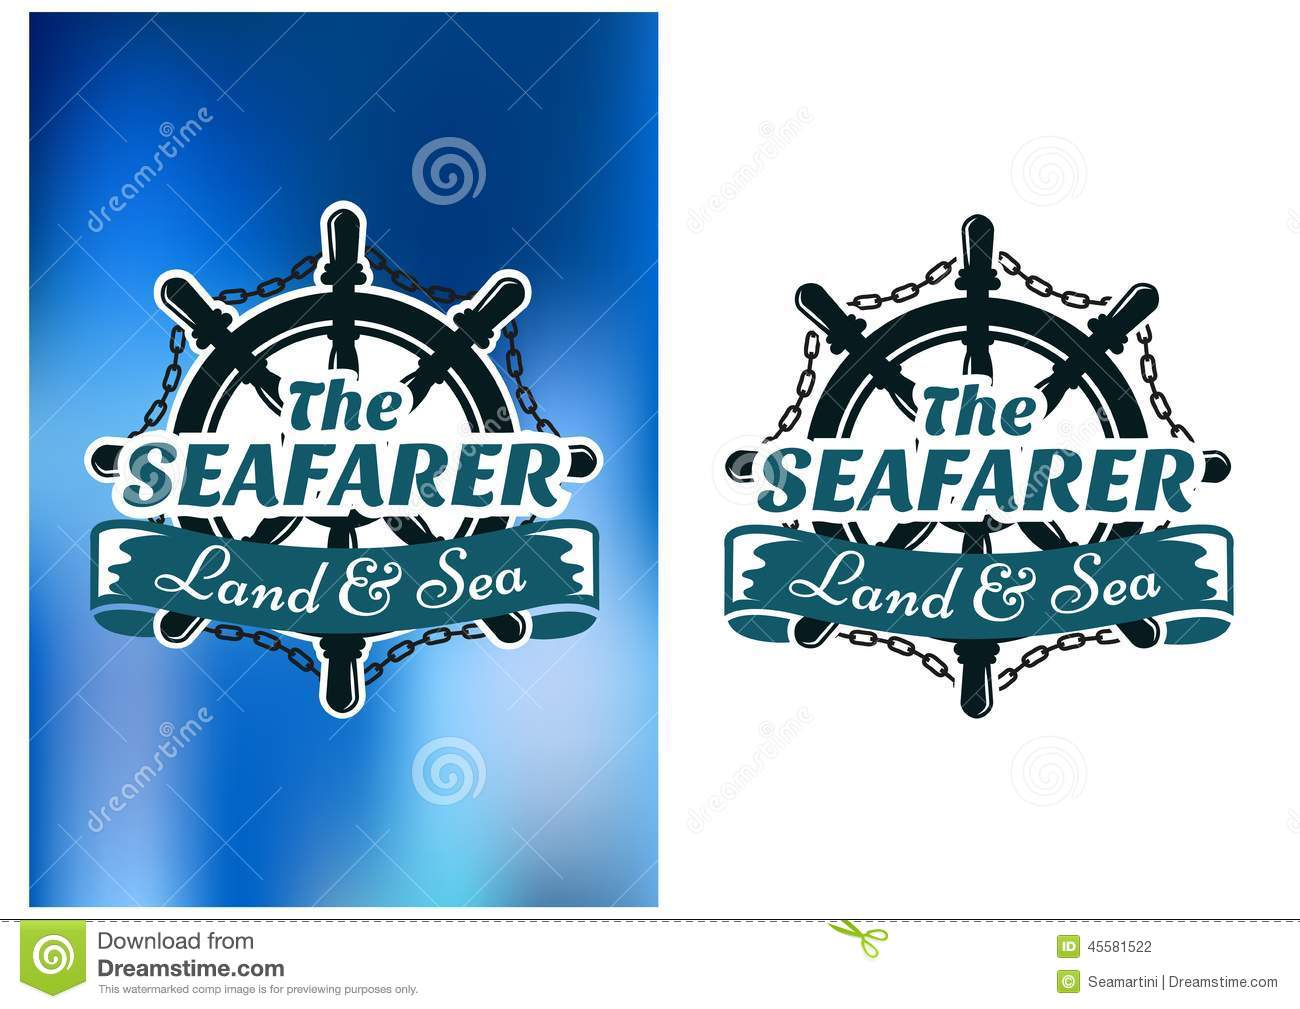 what is the theme of the seafarer